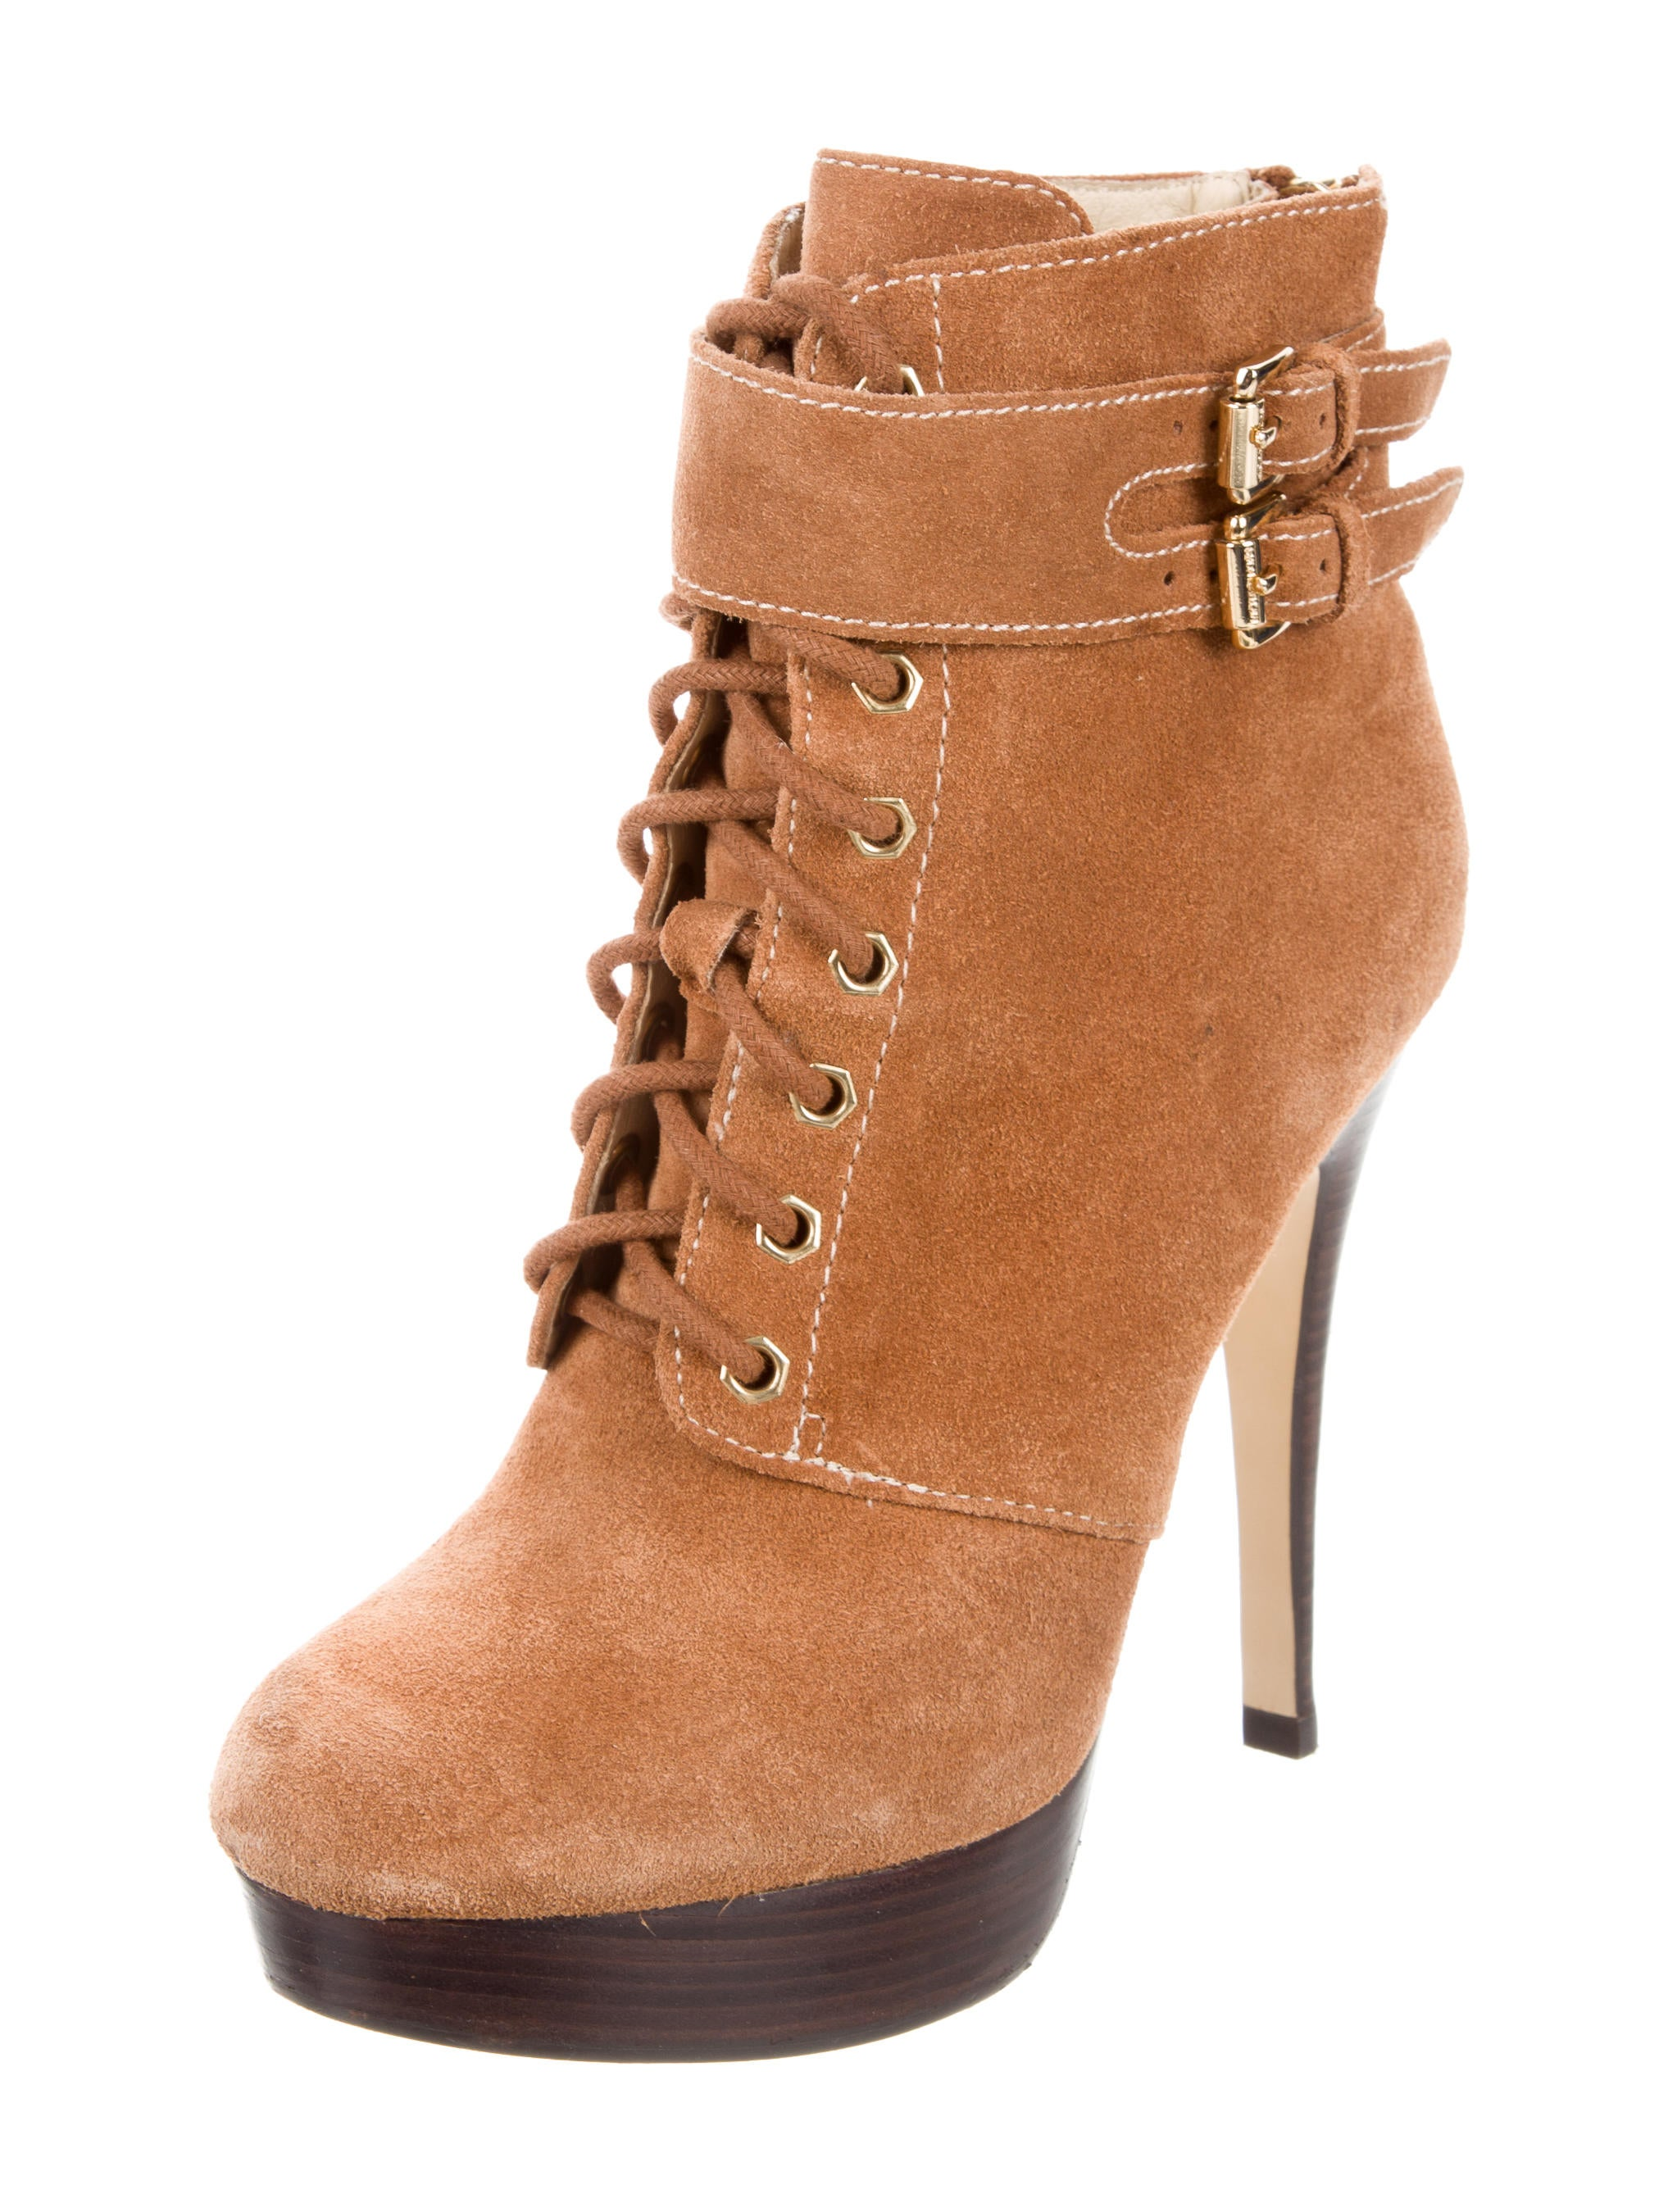 We have sexy shoes in all colors and sizes, You will find pumps, stiletto, sandals, high heels, platform, sexy boots and thigh high boots.